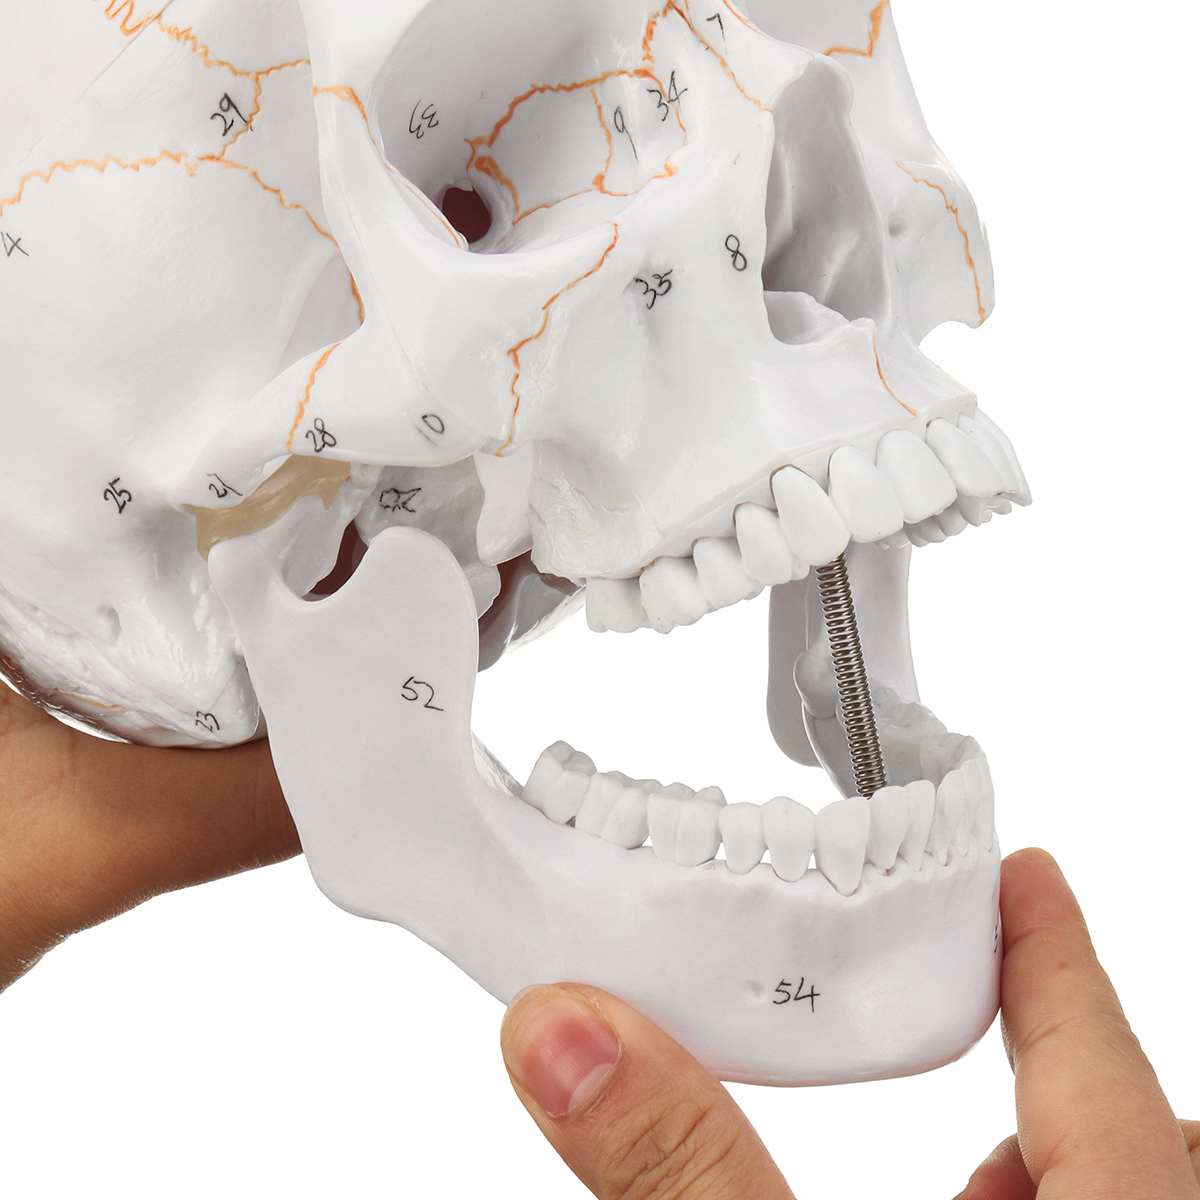 Head Skeleton Skull 1:1 Model Medical Science Teaching Life size Skull for School Human Anatomy Precise Adult Head Medical Model